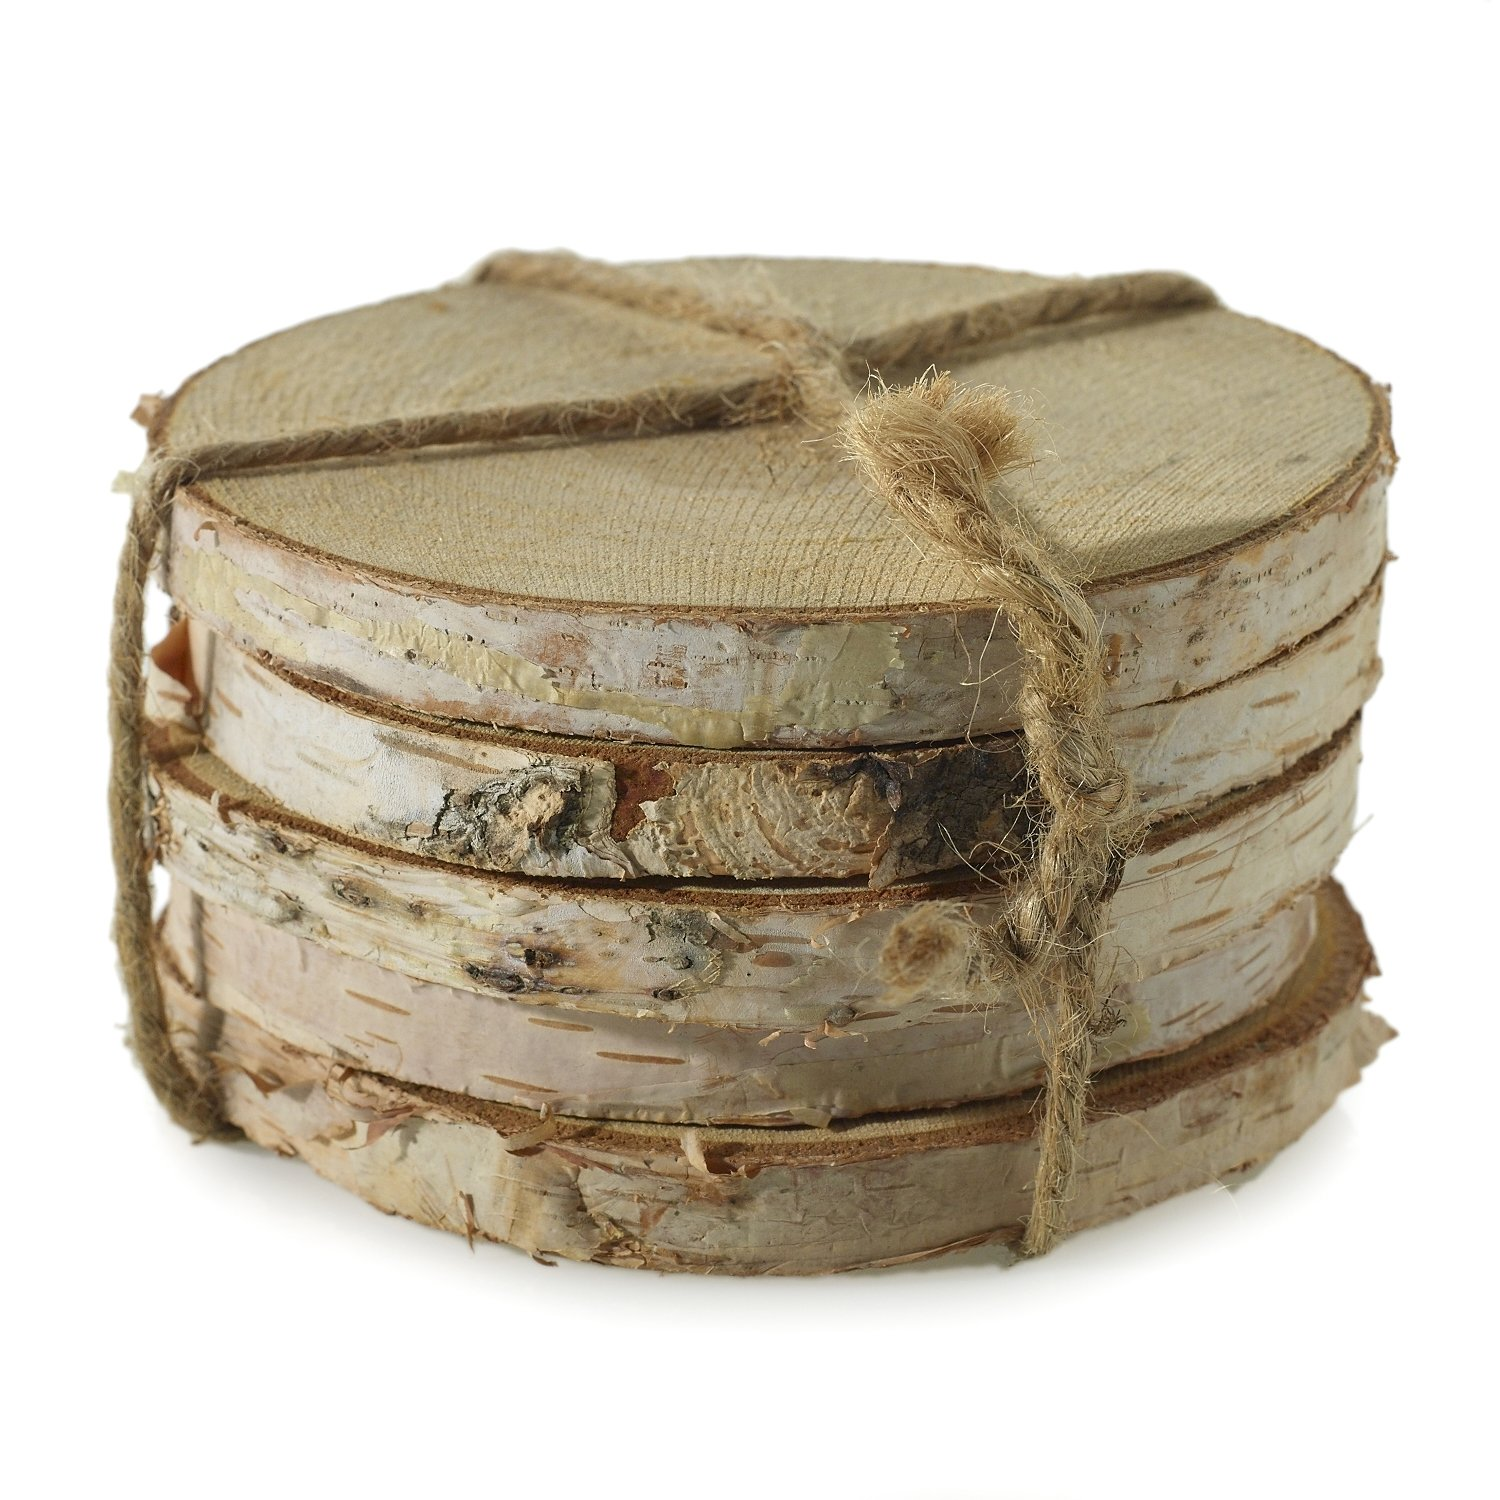 Wooden Birch Round Coasters - Set of 5 - 4 x 0.5 Inches - Real Wood Discs with Bark - Rustic Table Pieces for Home, Office, or Wedding